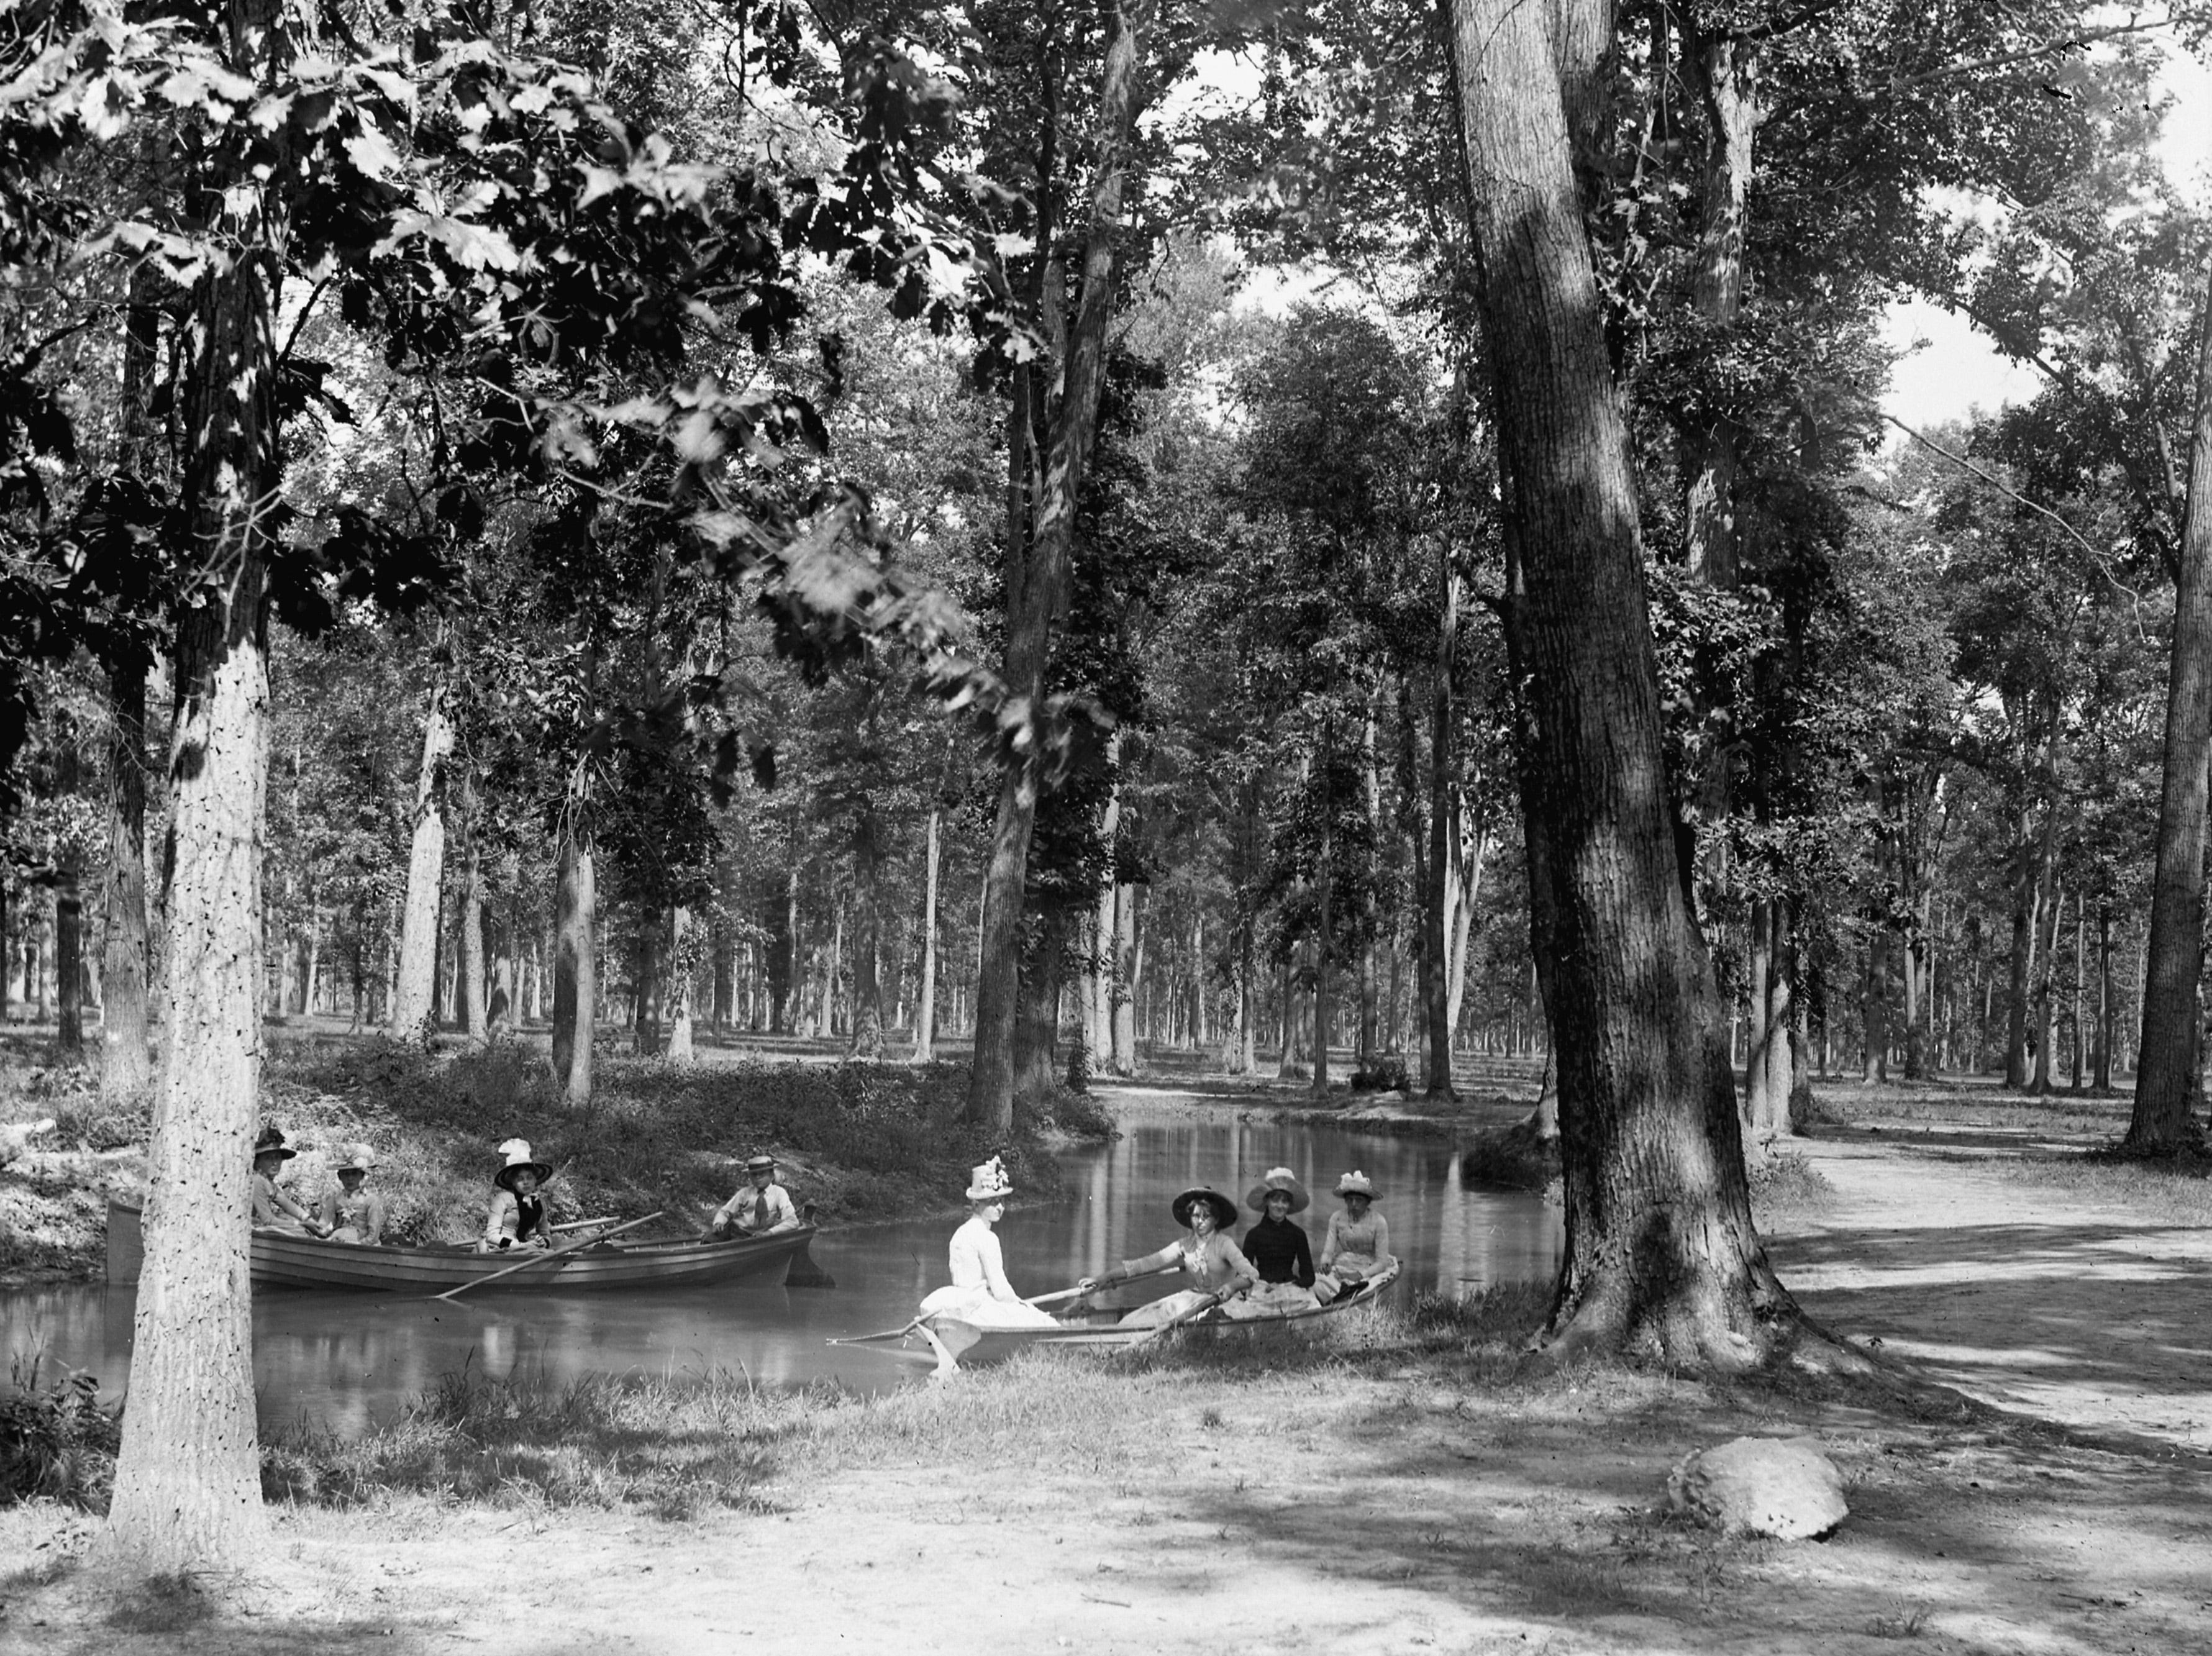 People in rowboats on the Belle Isle Park canal in the late 1800s. The park was designed in the 1880s by Frederick Law Olmstead, who also created New York City's Central Park.   See more historic photos like this in Detroit Memories Volume II: A Pictorial History of the Early Years through the 1940s. Order today at Detroit2.PictorialBook.com.